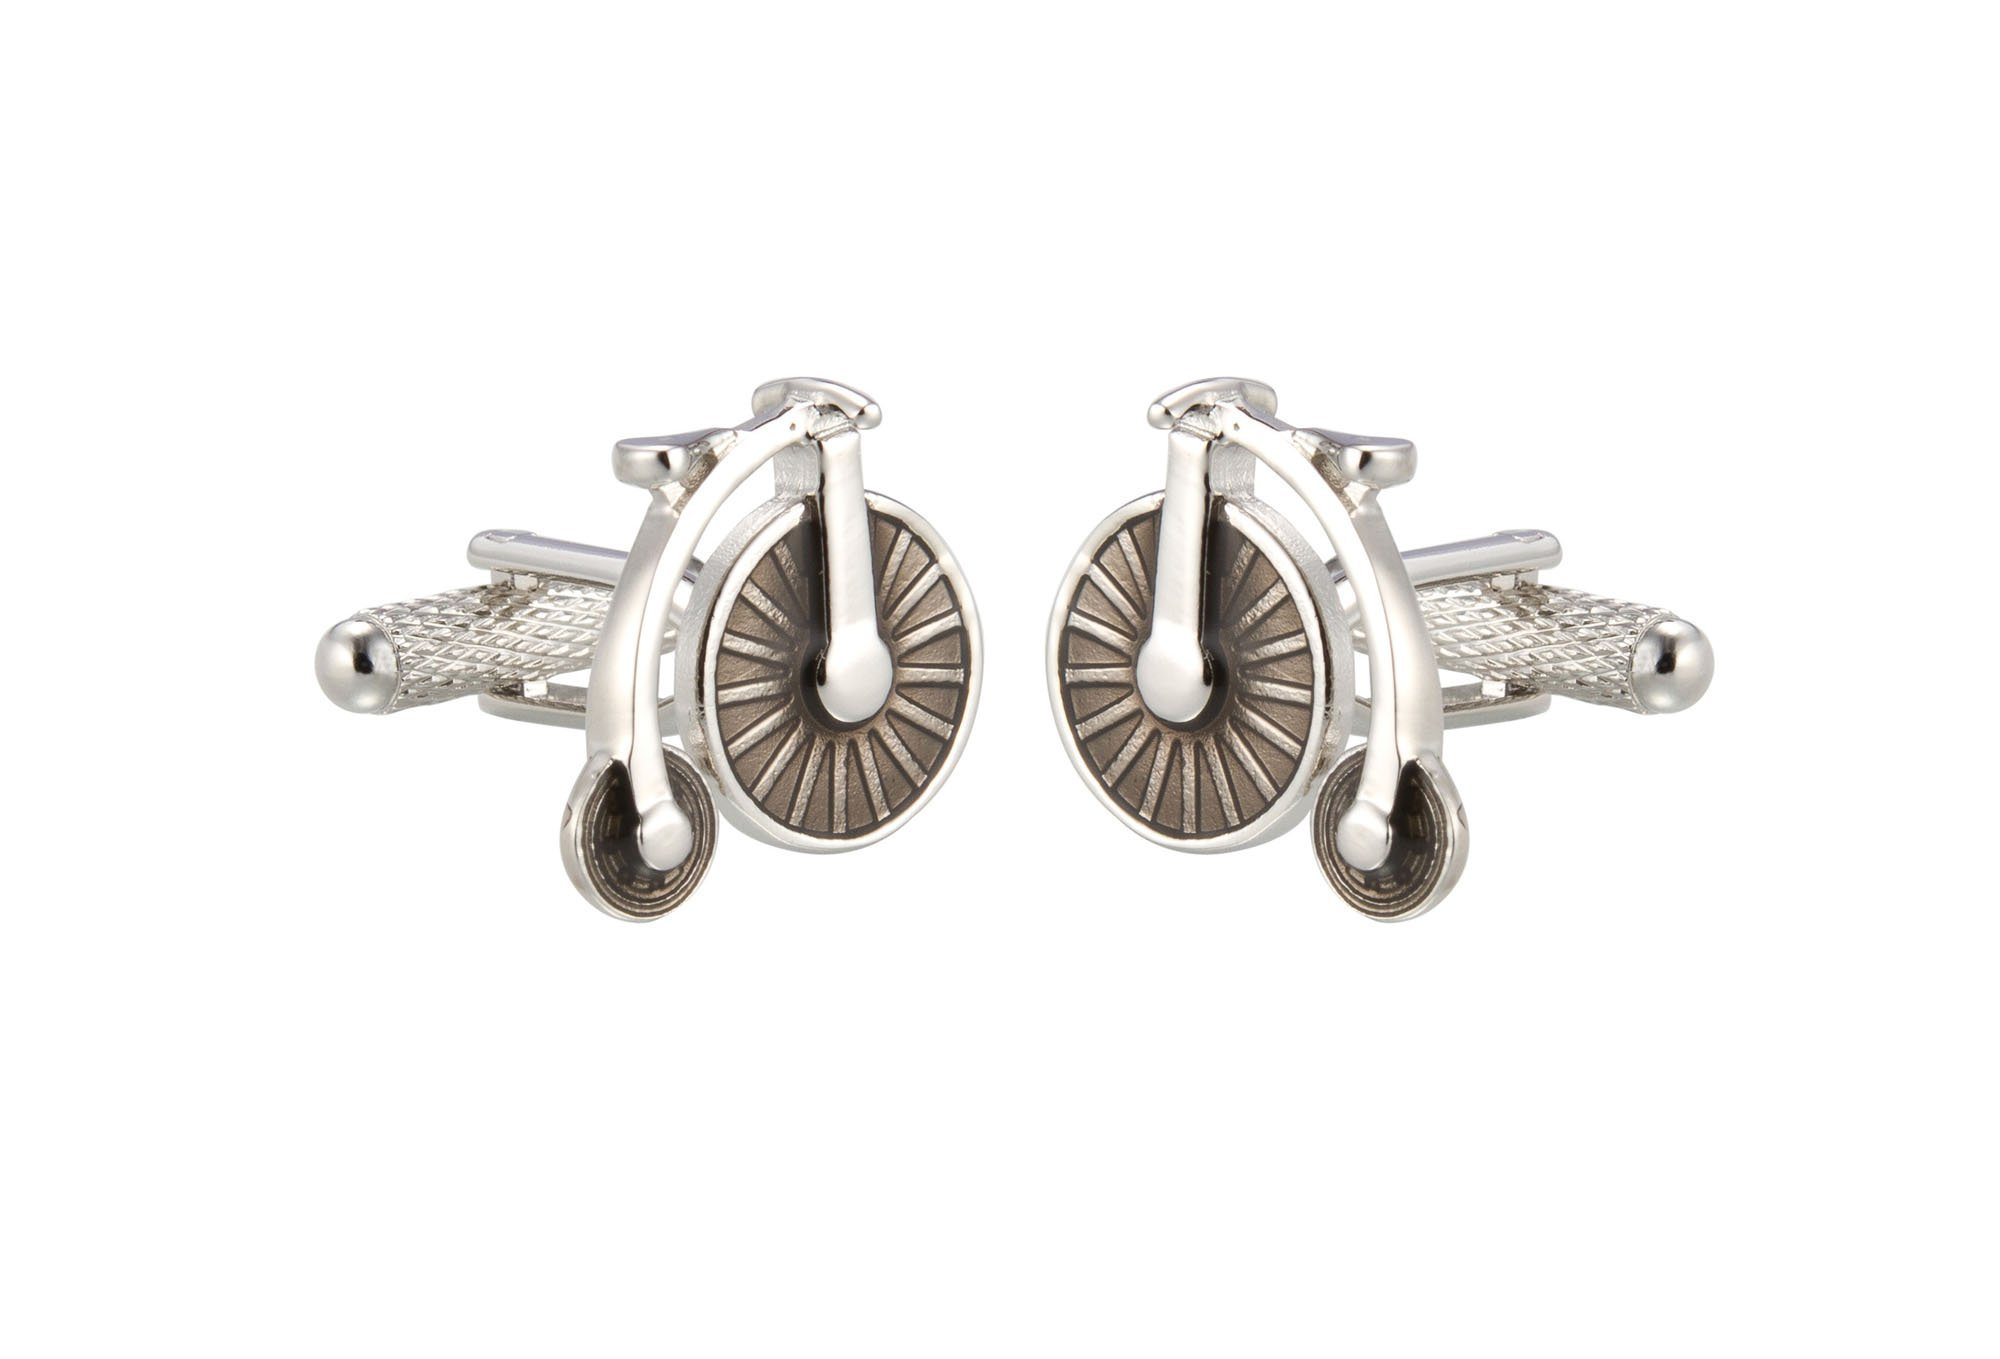 KNIGHTHOOD Men's Stainless Steel Vintage Bicycle Cufflinks Silver